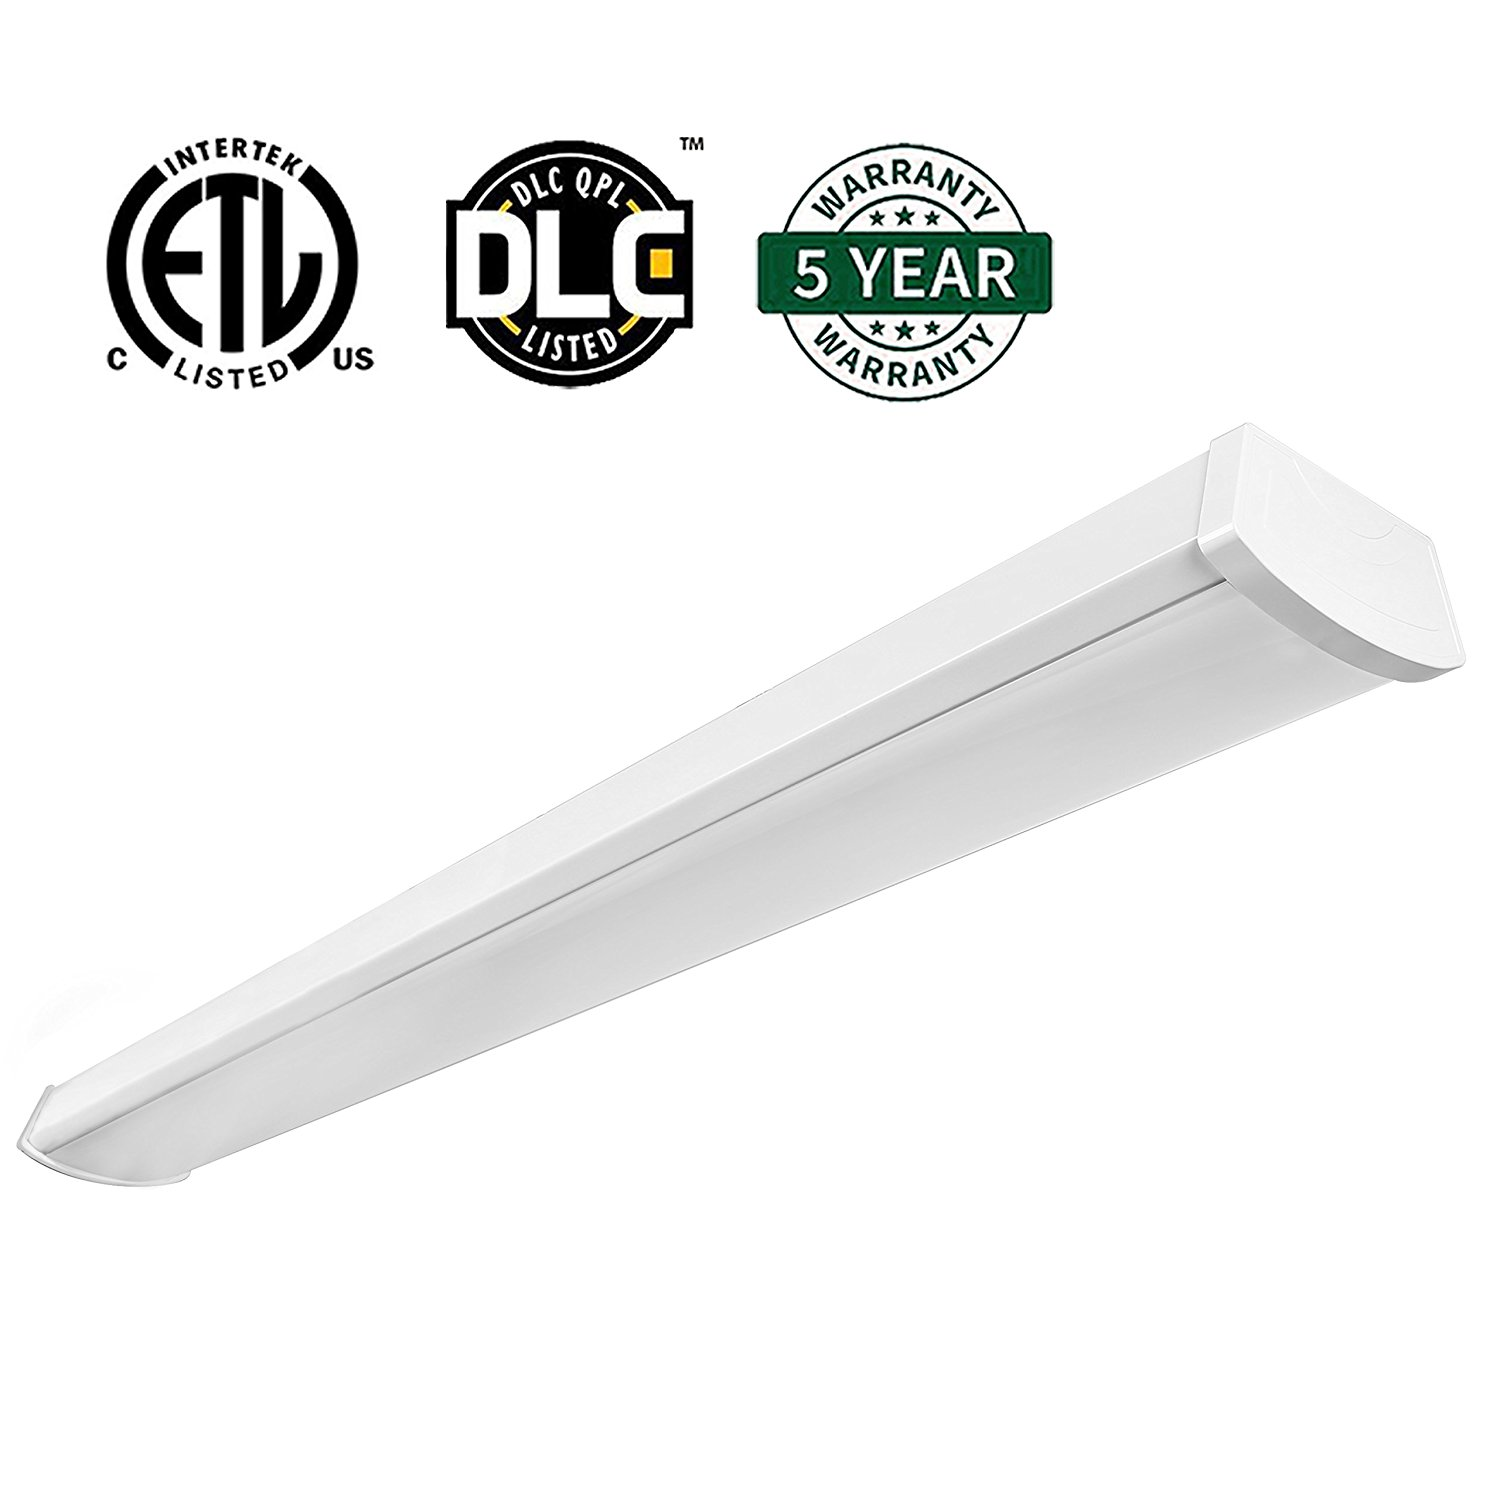 Hykolity 4ft 40W LED Garage Shop Light Wraparound Flushmount Commercial Office Ceiling Lamp 2800 Lumens 5000K Daylight White 64w Fluorescent Equivalent